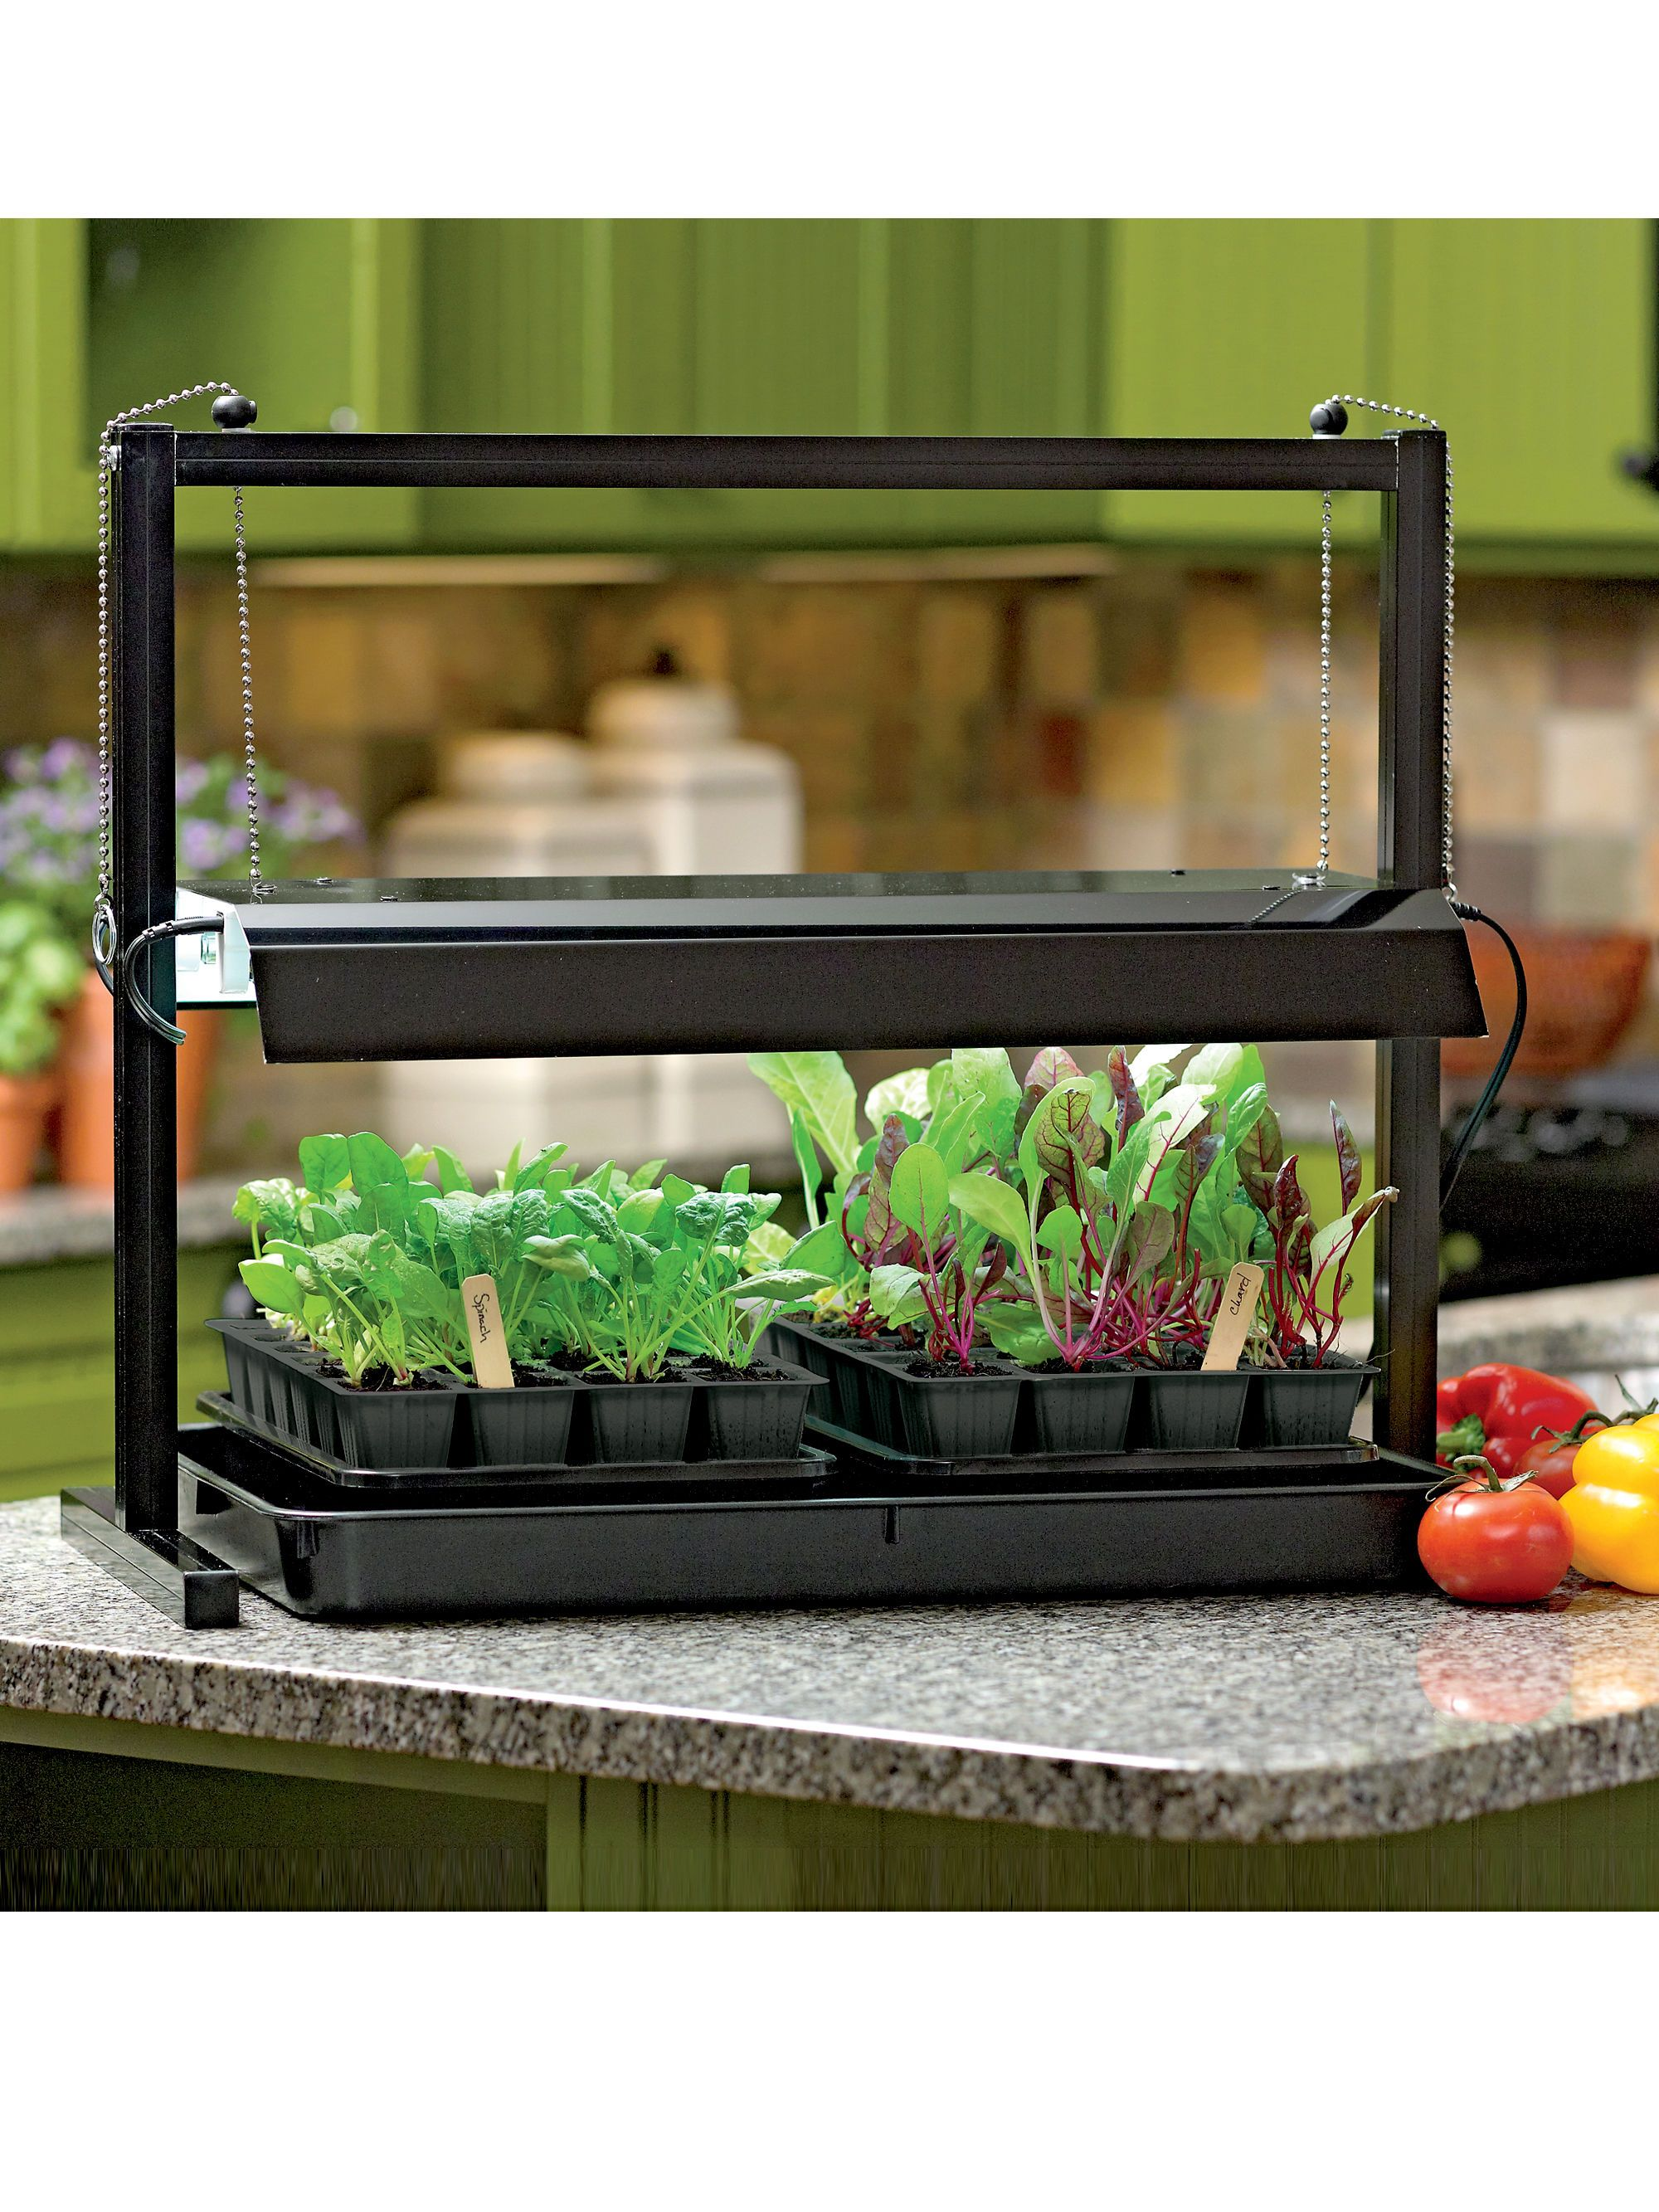 Small Table Top Grow Light With T5 Bulbs Gardeners Com Kitchen